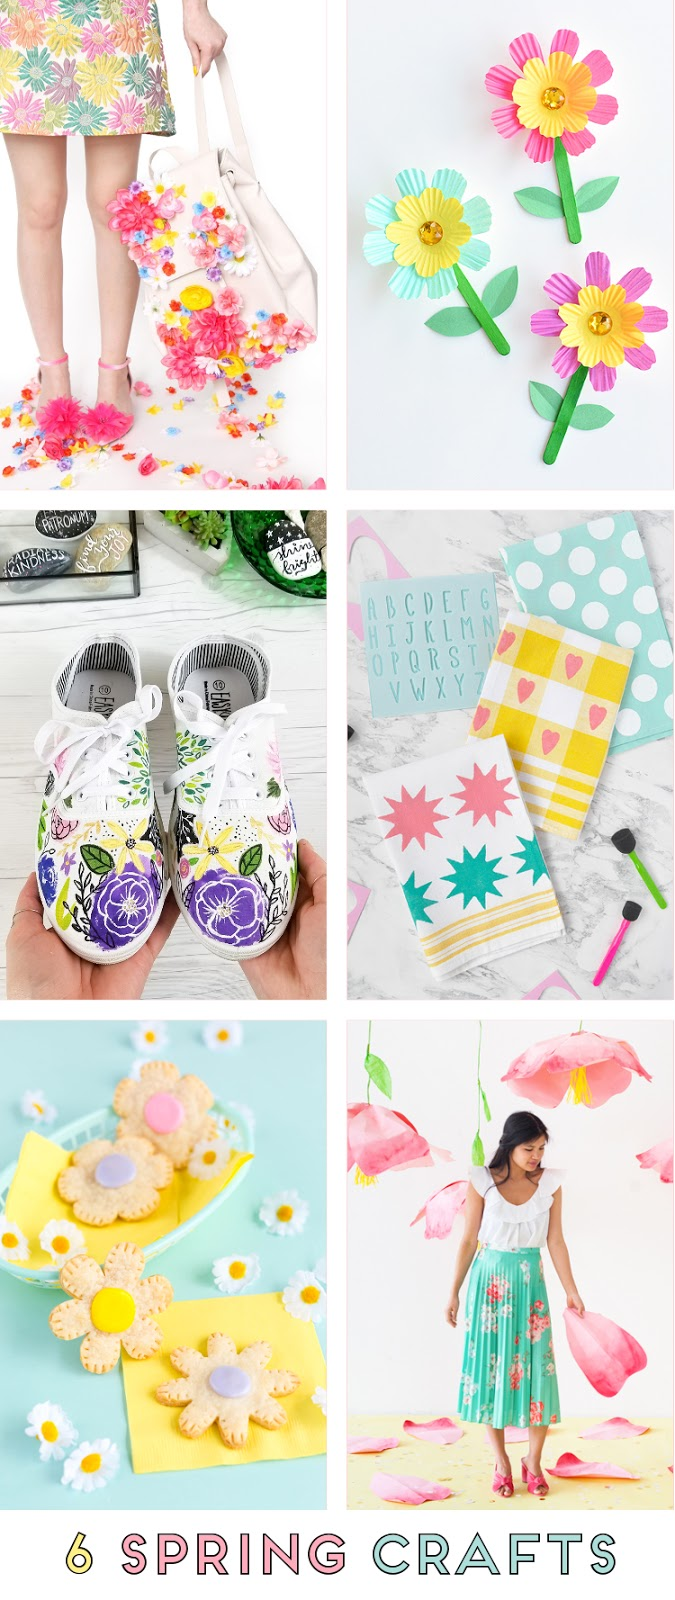 6 PASTEL SPRING CRAFTS TO MAKE AND DO